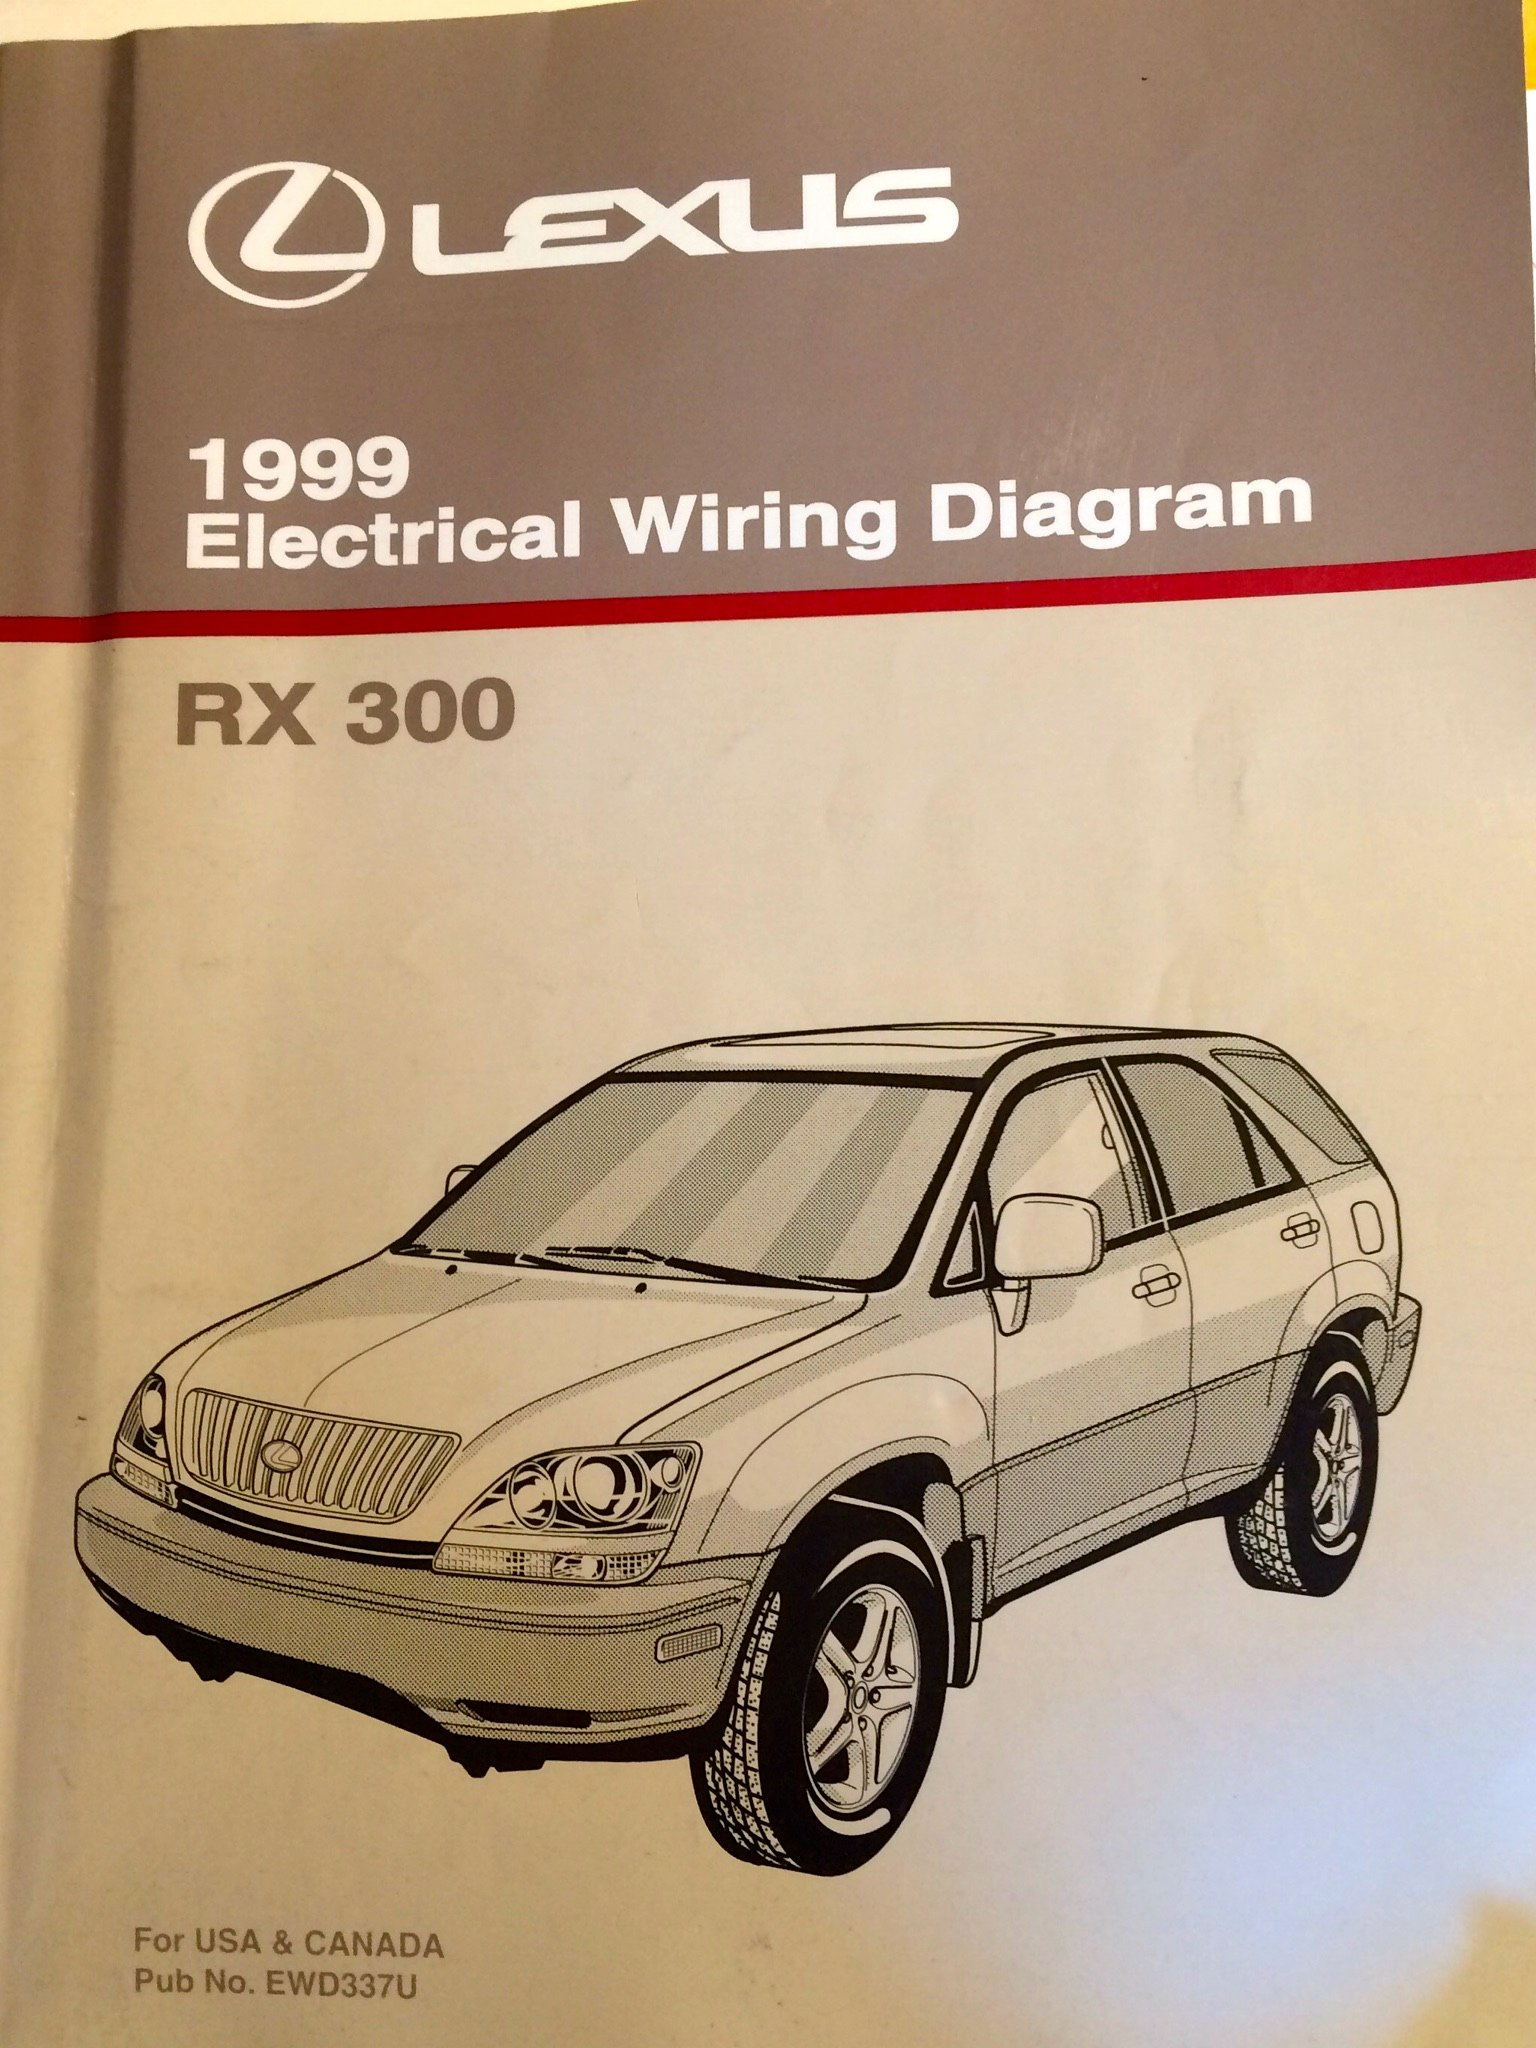 Lexus Rx300 Wiring Diagram Find Wiring Diagram \u2022 Lexus RX300 Fuse Box  Diagram 1999 Lexus Rx300 Wiring Diagram